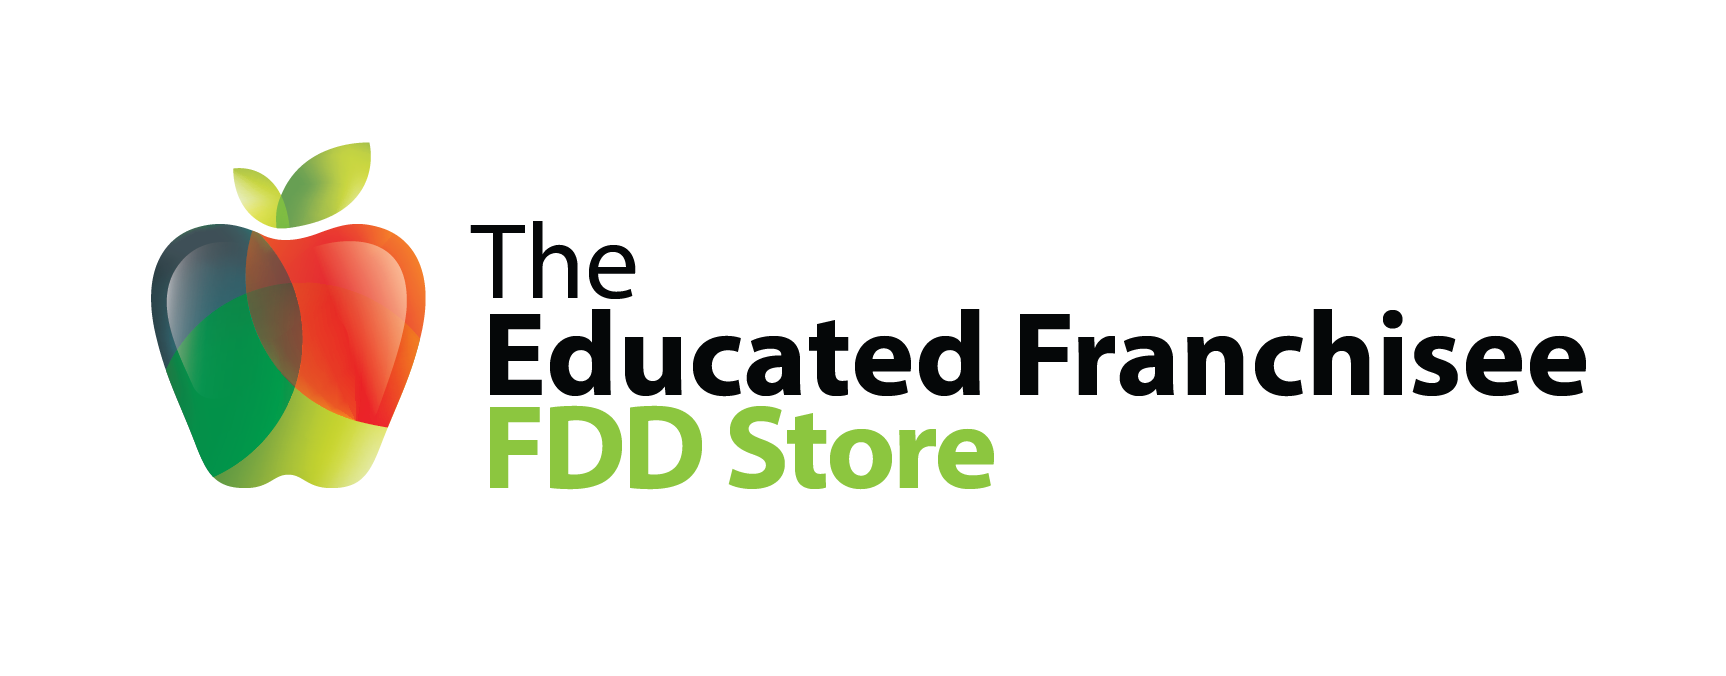 https://educatedfranchisee.com/wp-content/uploads/2017/07/EF_FDDStore.png